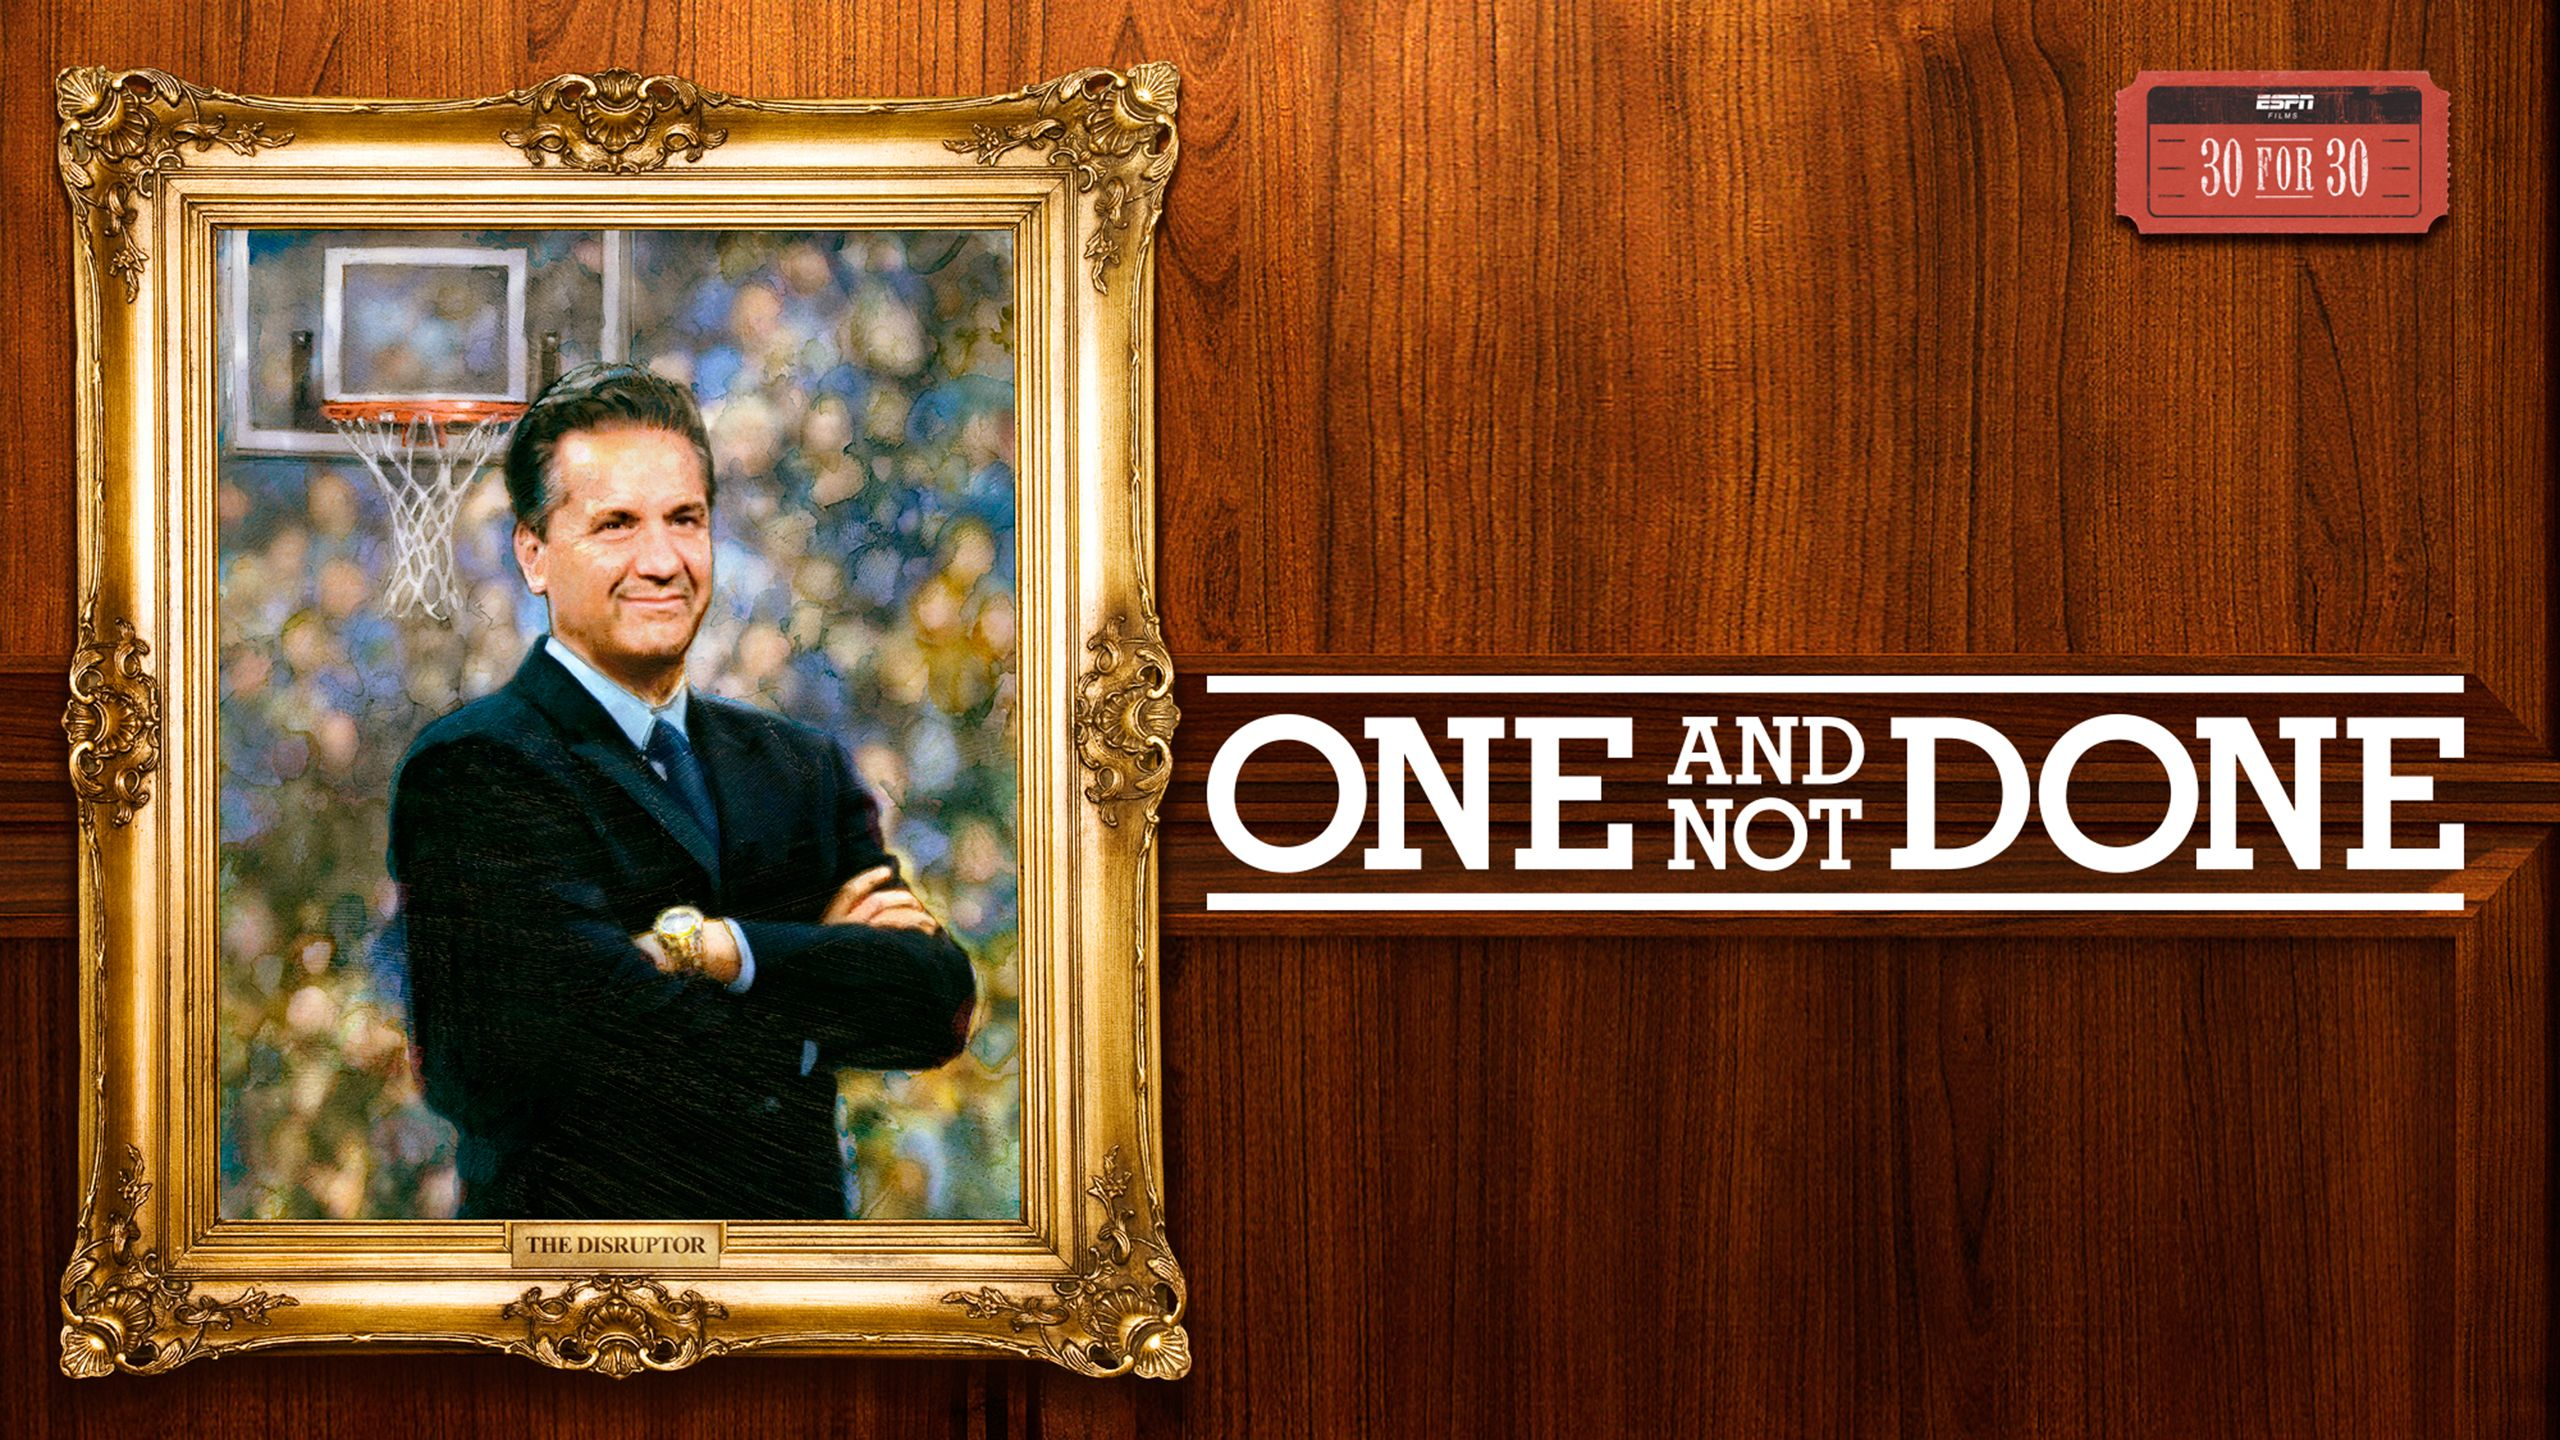 30 For 30: One and Not Done